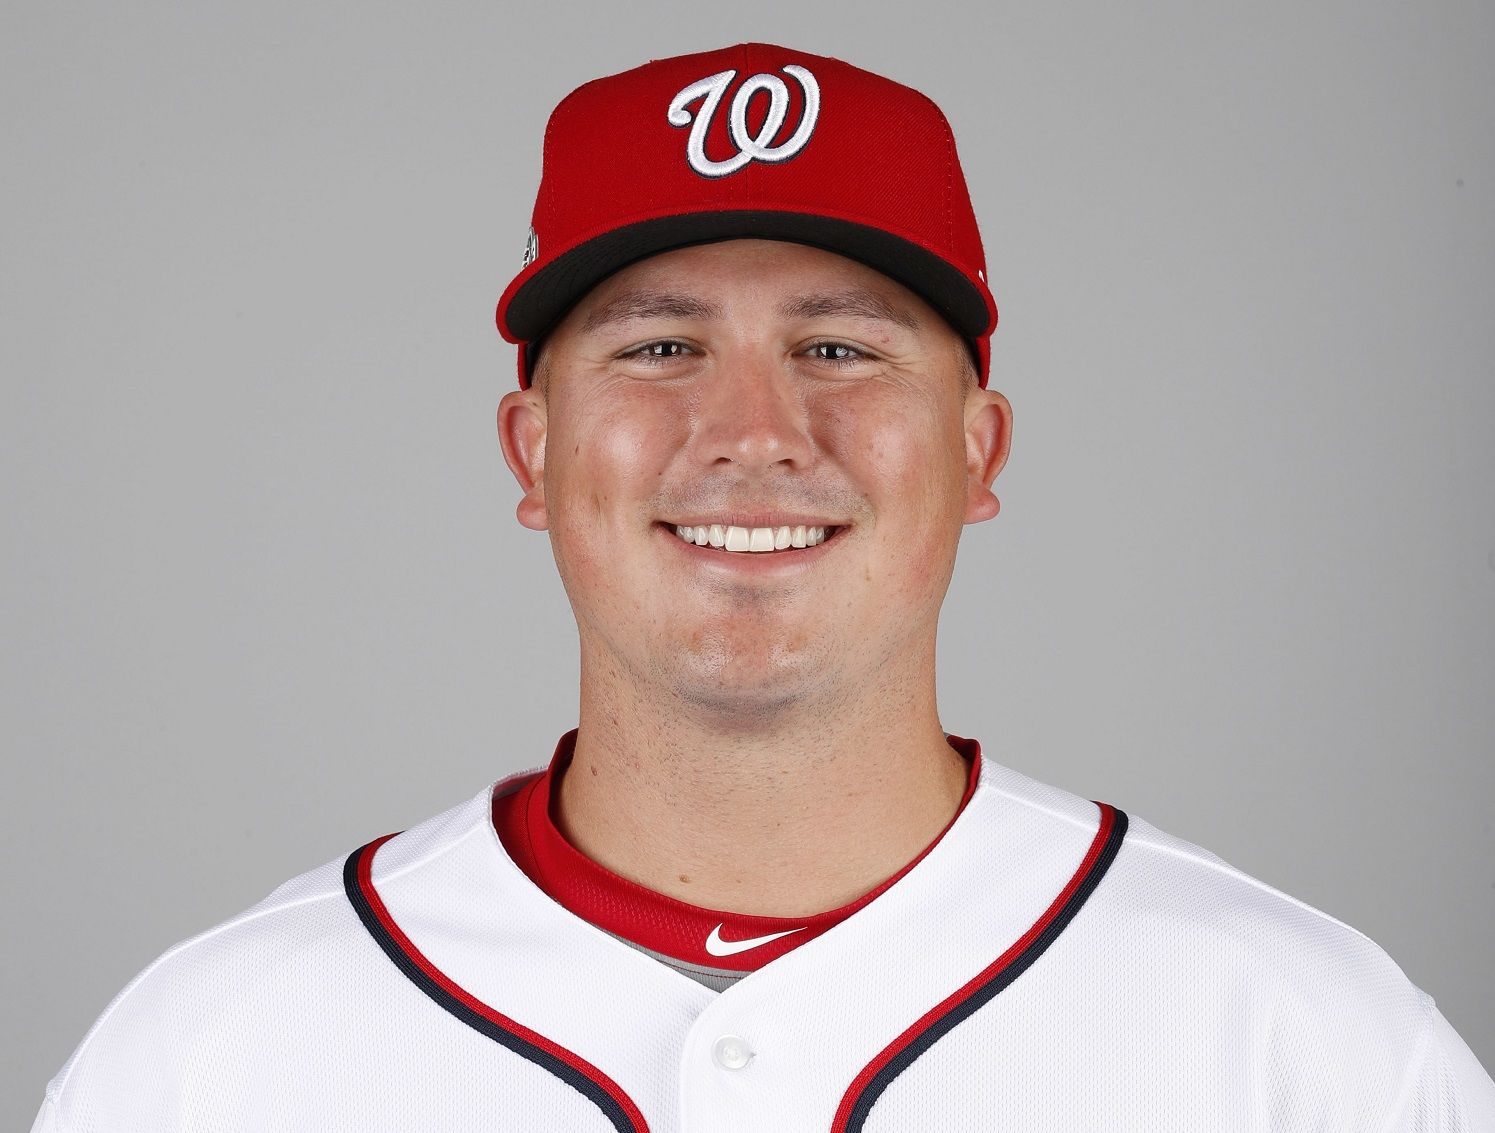 This is a 2018 photo of Sammy Solis of the Washington Nationals baseball team. This image reflects the Nationals active roster as of Feb. 22, 2018 when this image was taken. (AP Photo/Jeff Roberson)